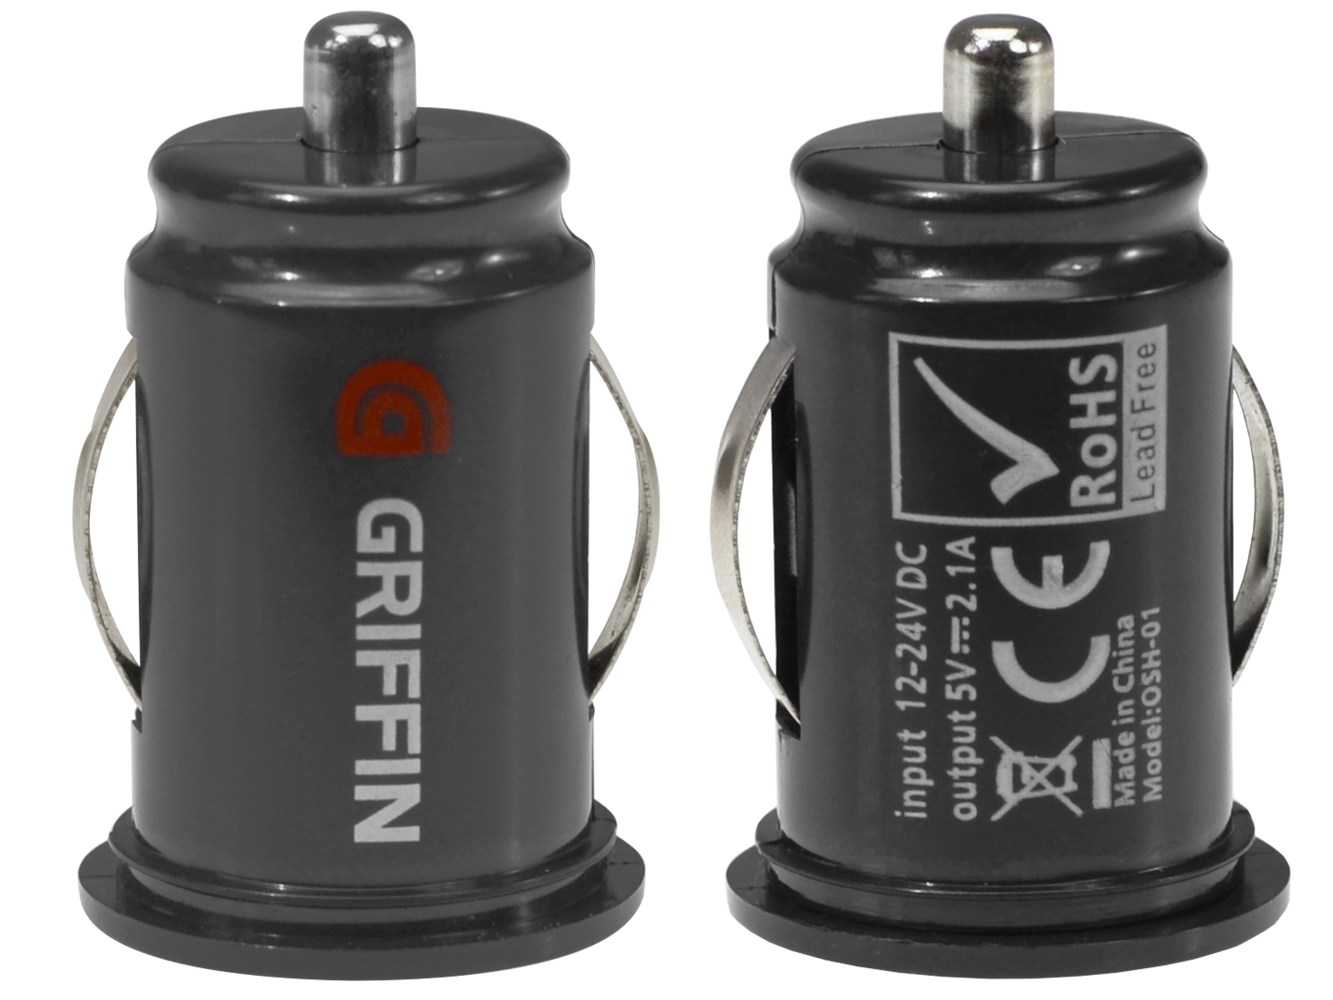 Griffin Car Charger: GRIFFIN CAR CHARGER 2X USB 2.1A - AS16